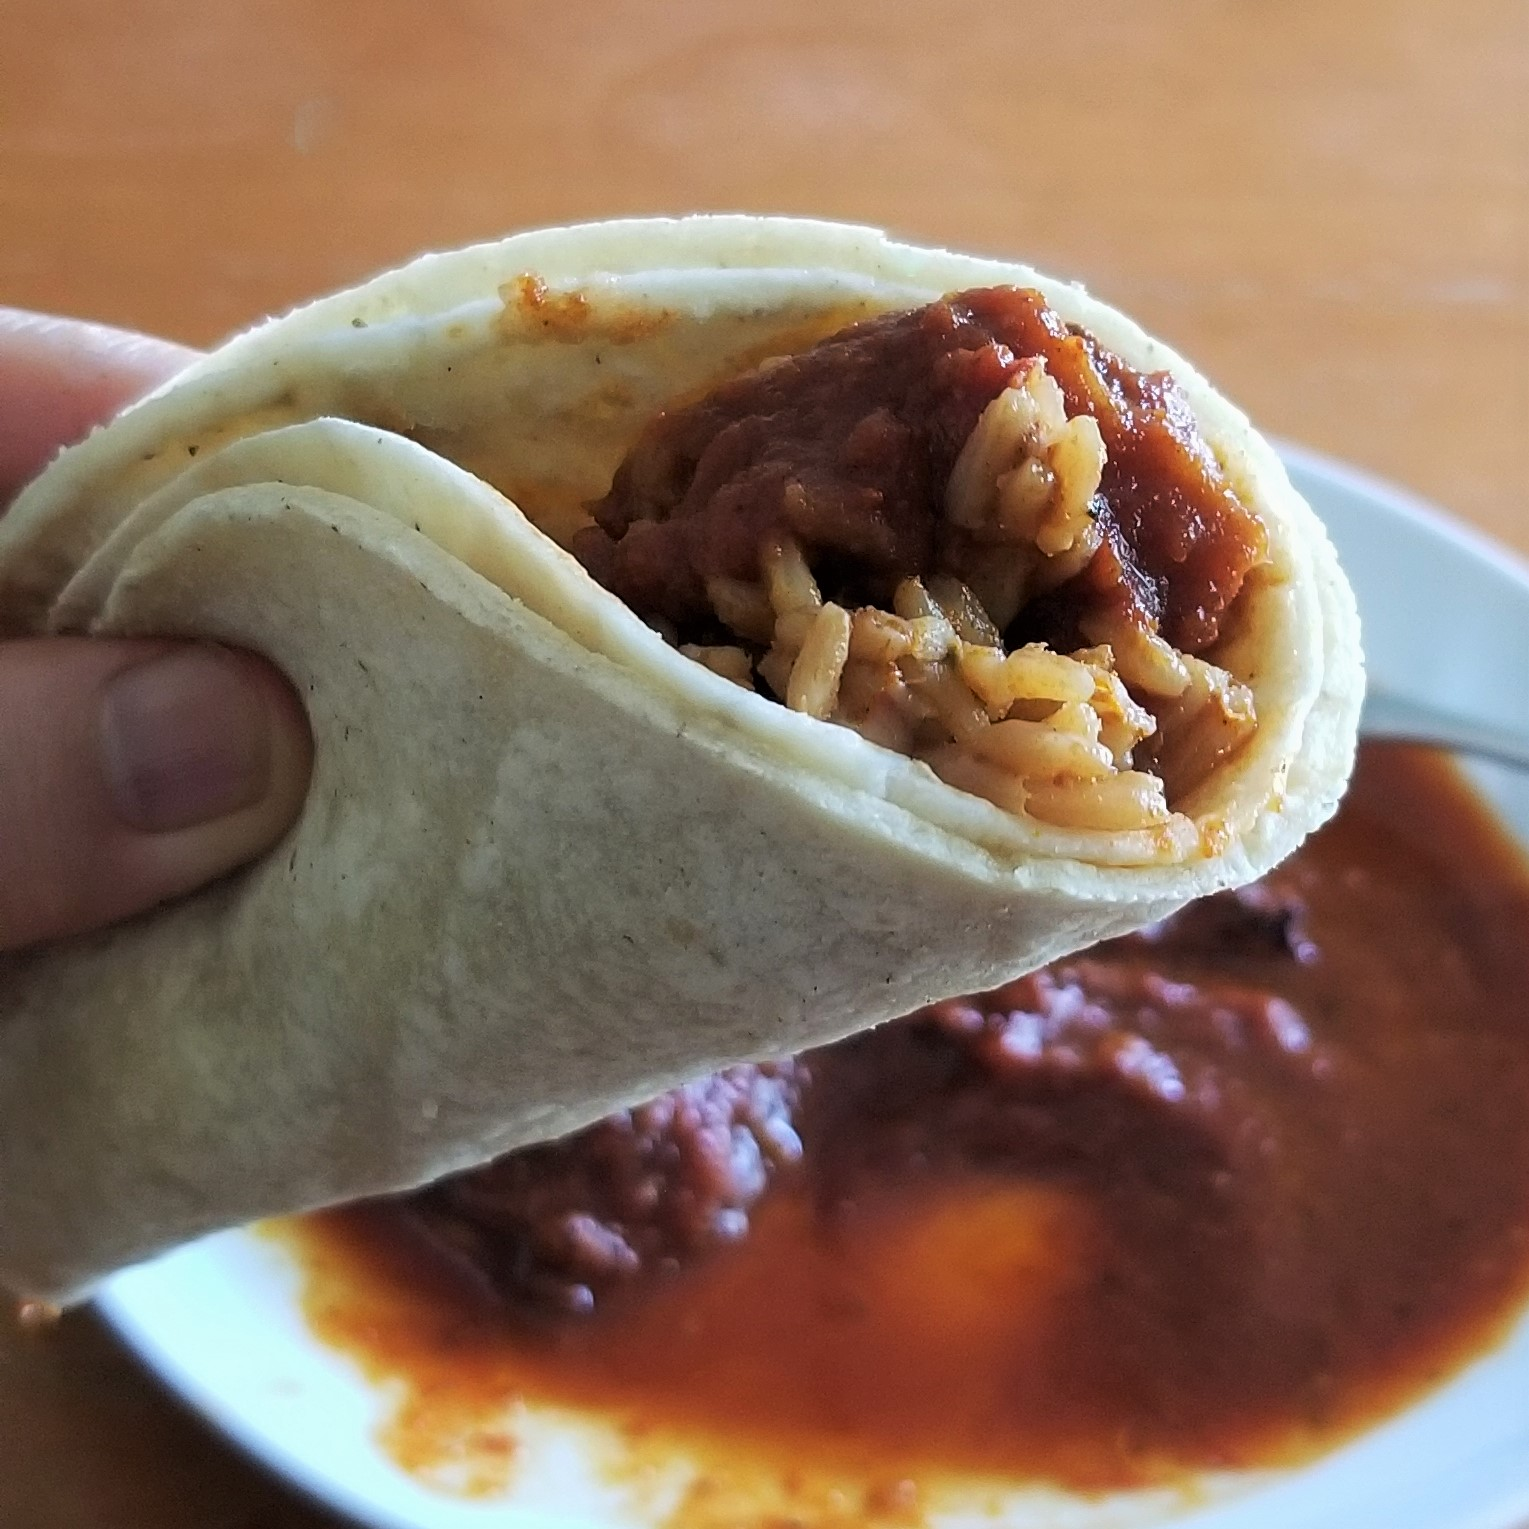 009-taco-acorazado-with-longaniza-in-red-sauce